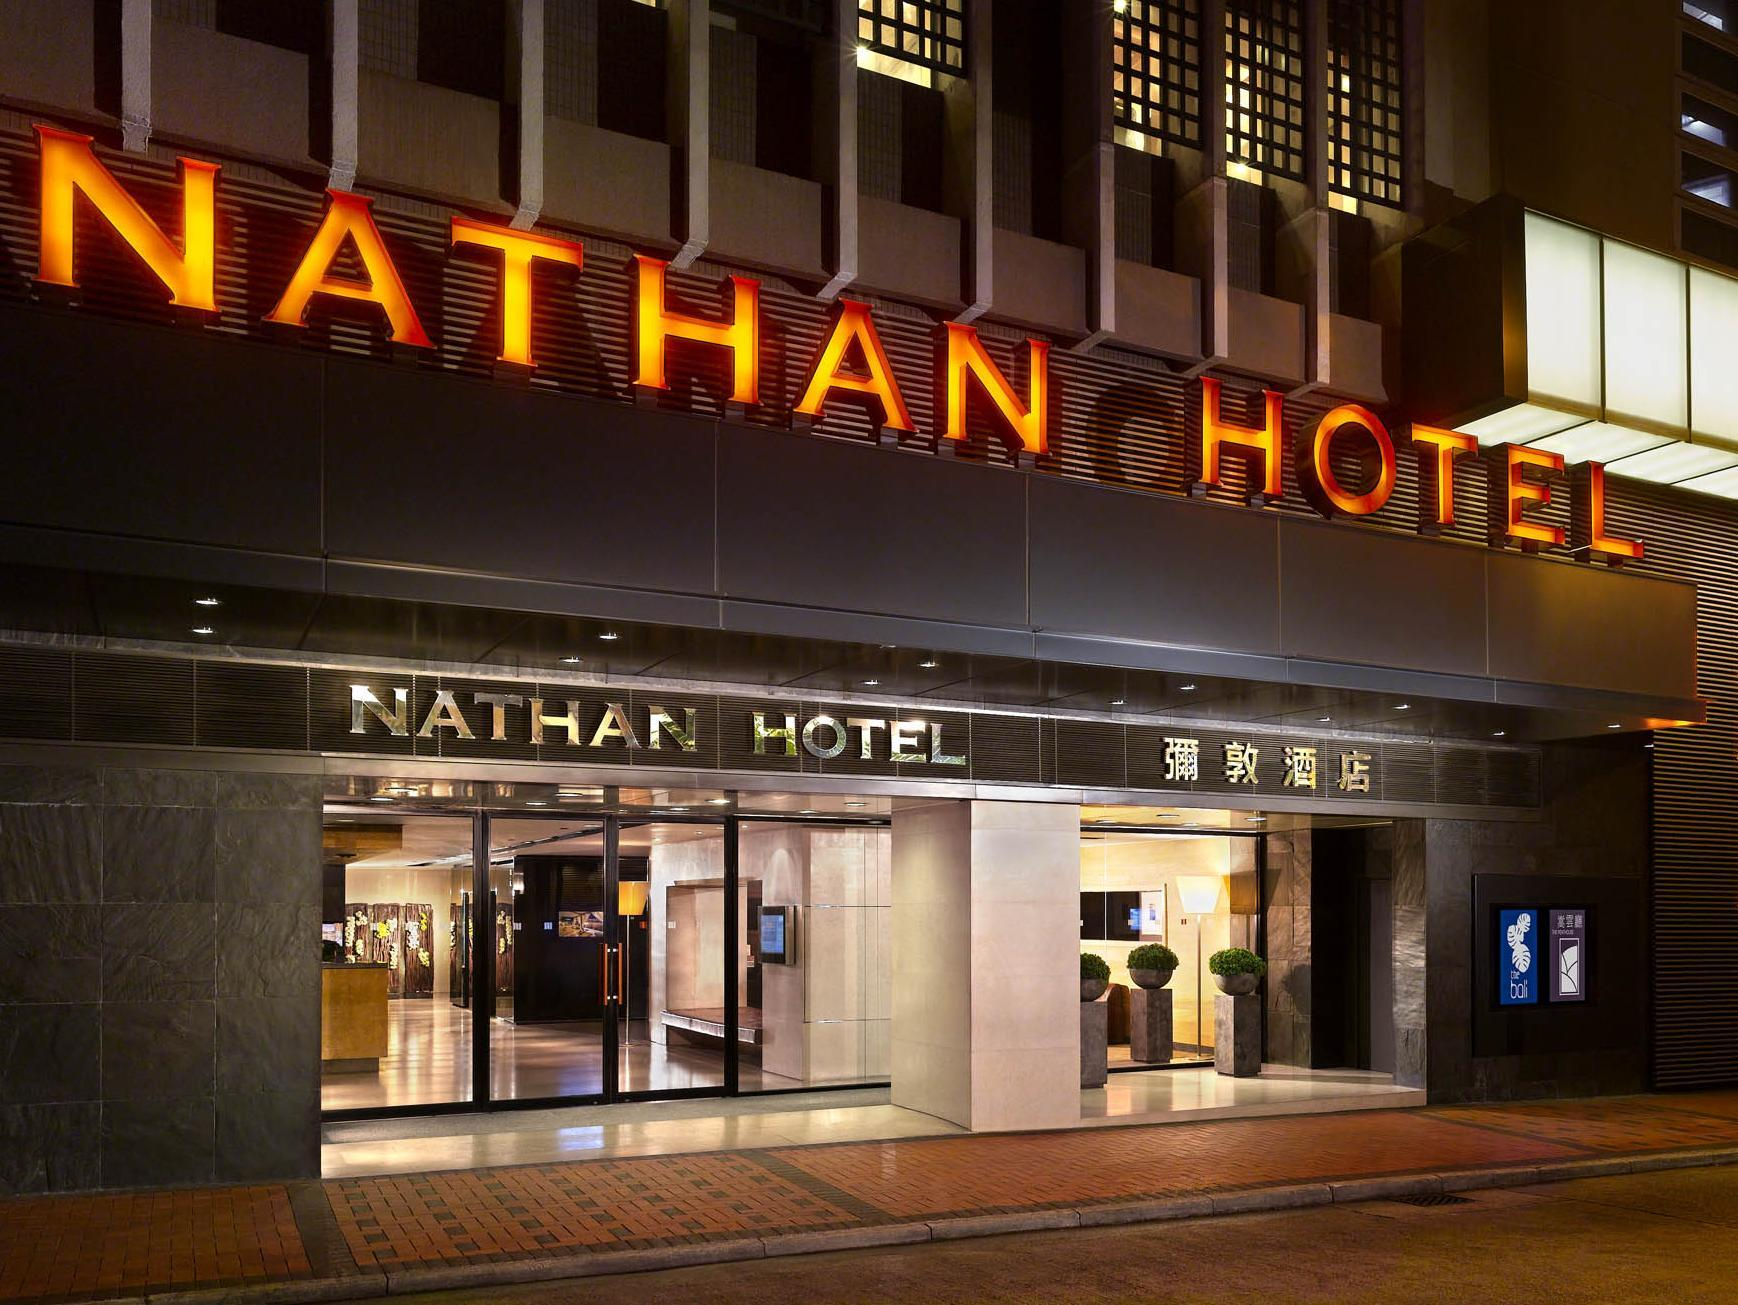 Nathan Hotel Hong Kong - Entrance